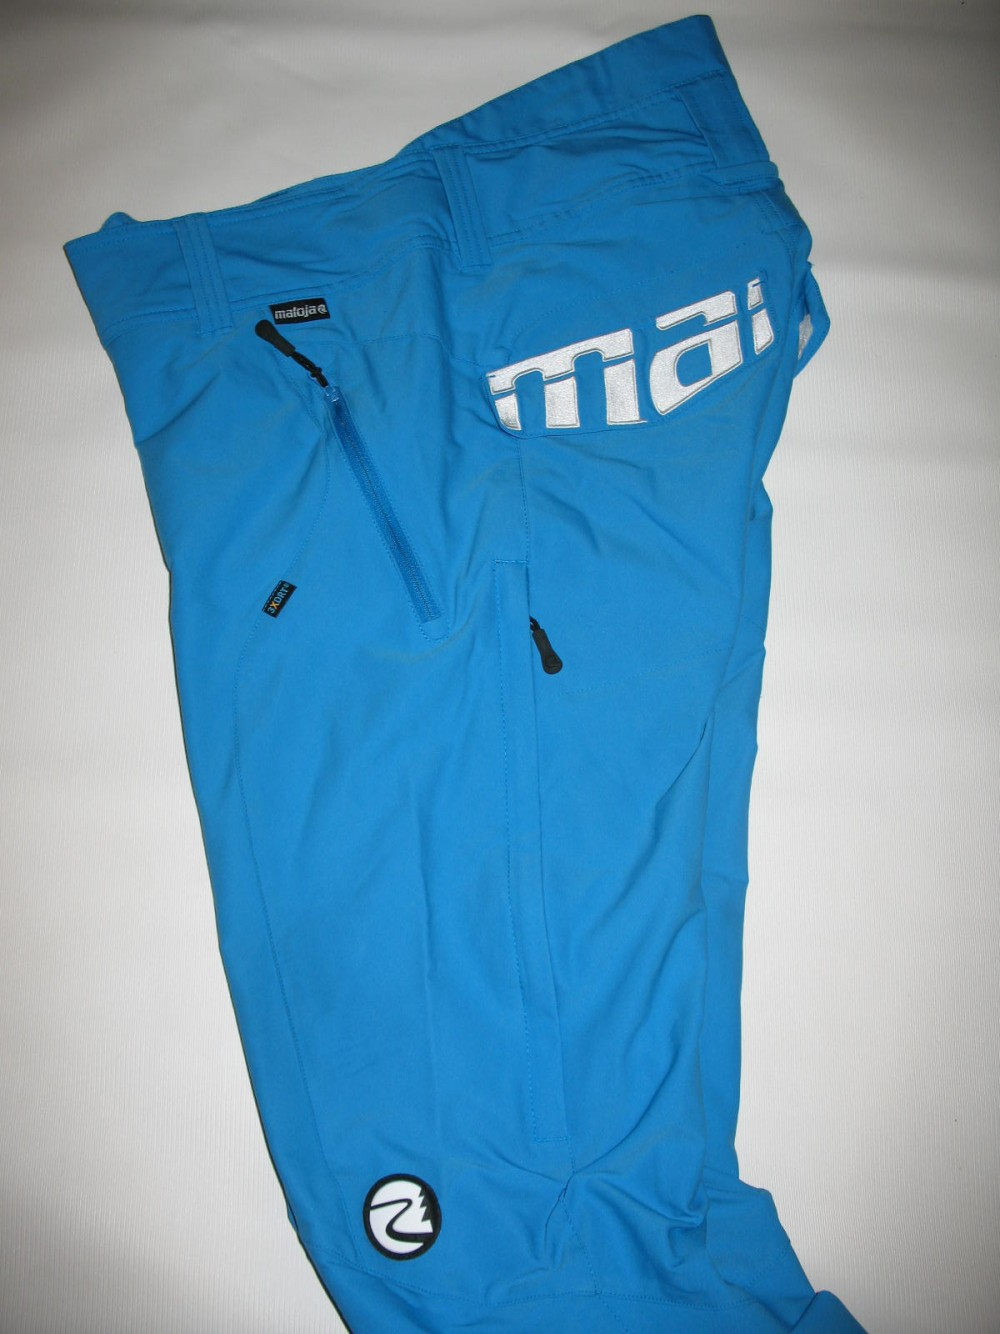 Велоштаны MALOJA 3xdry bike pants (размер M) - 5